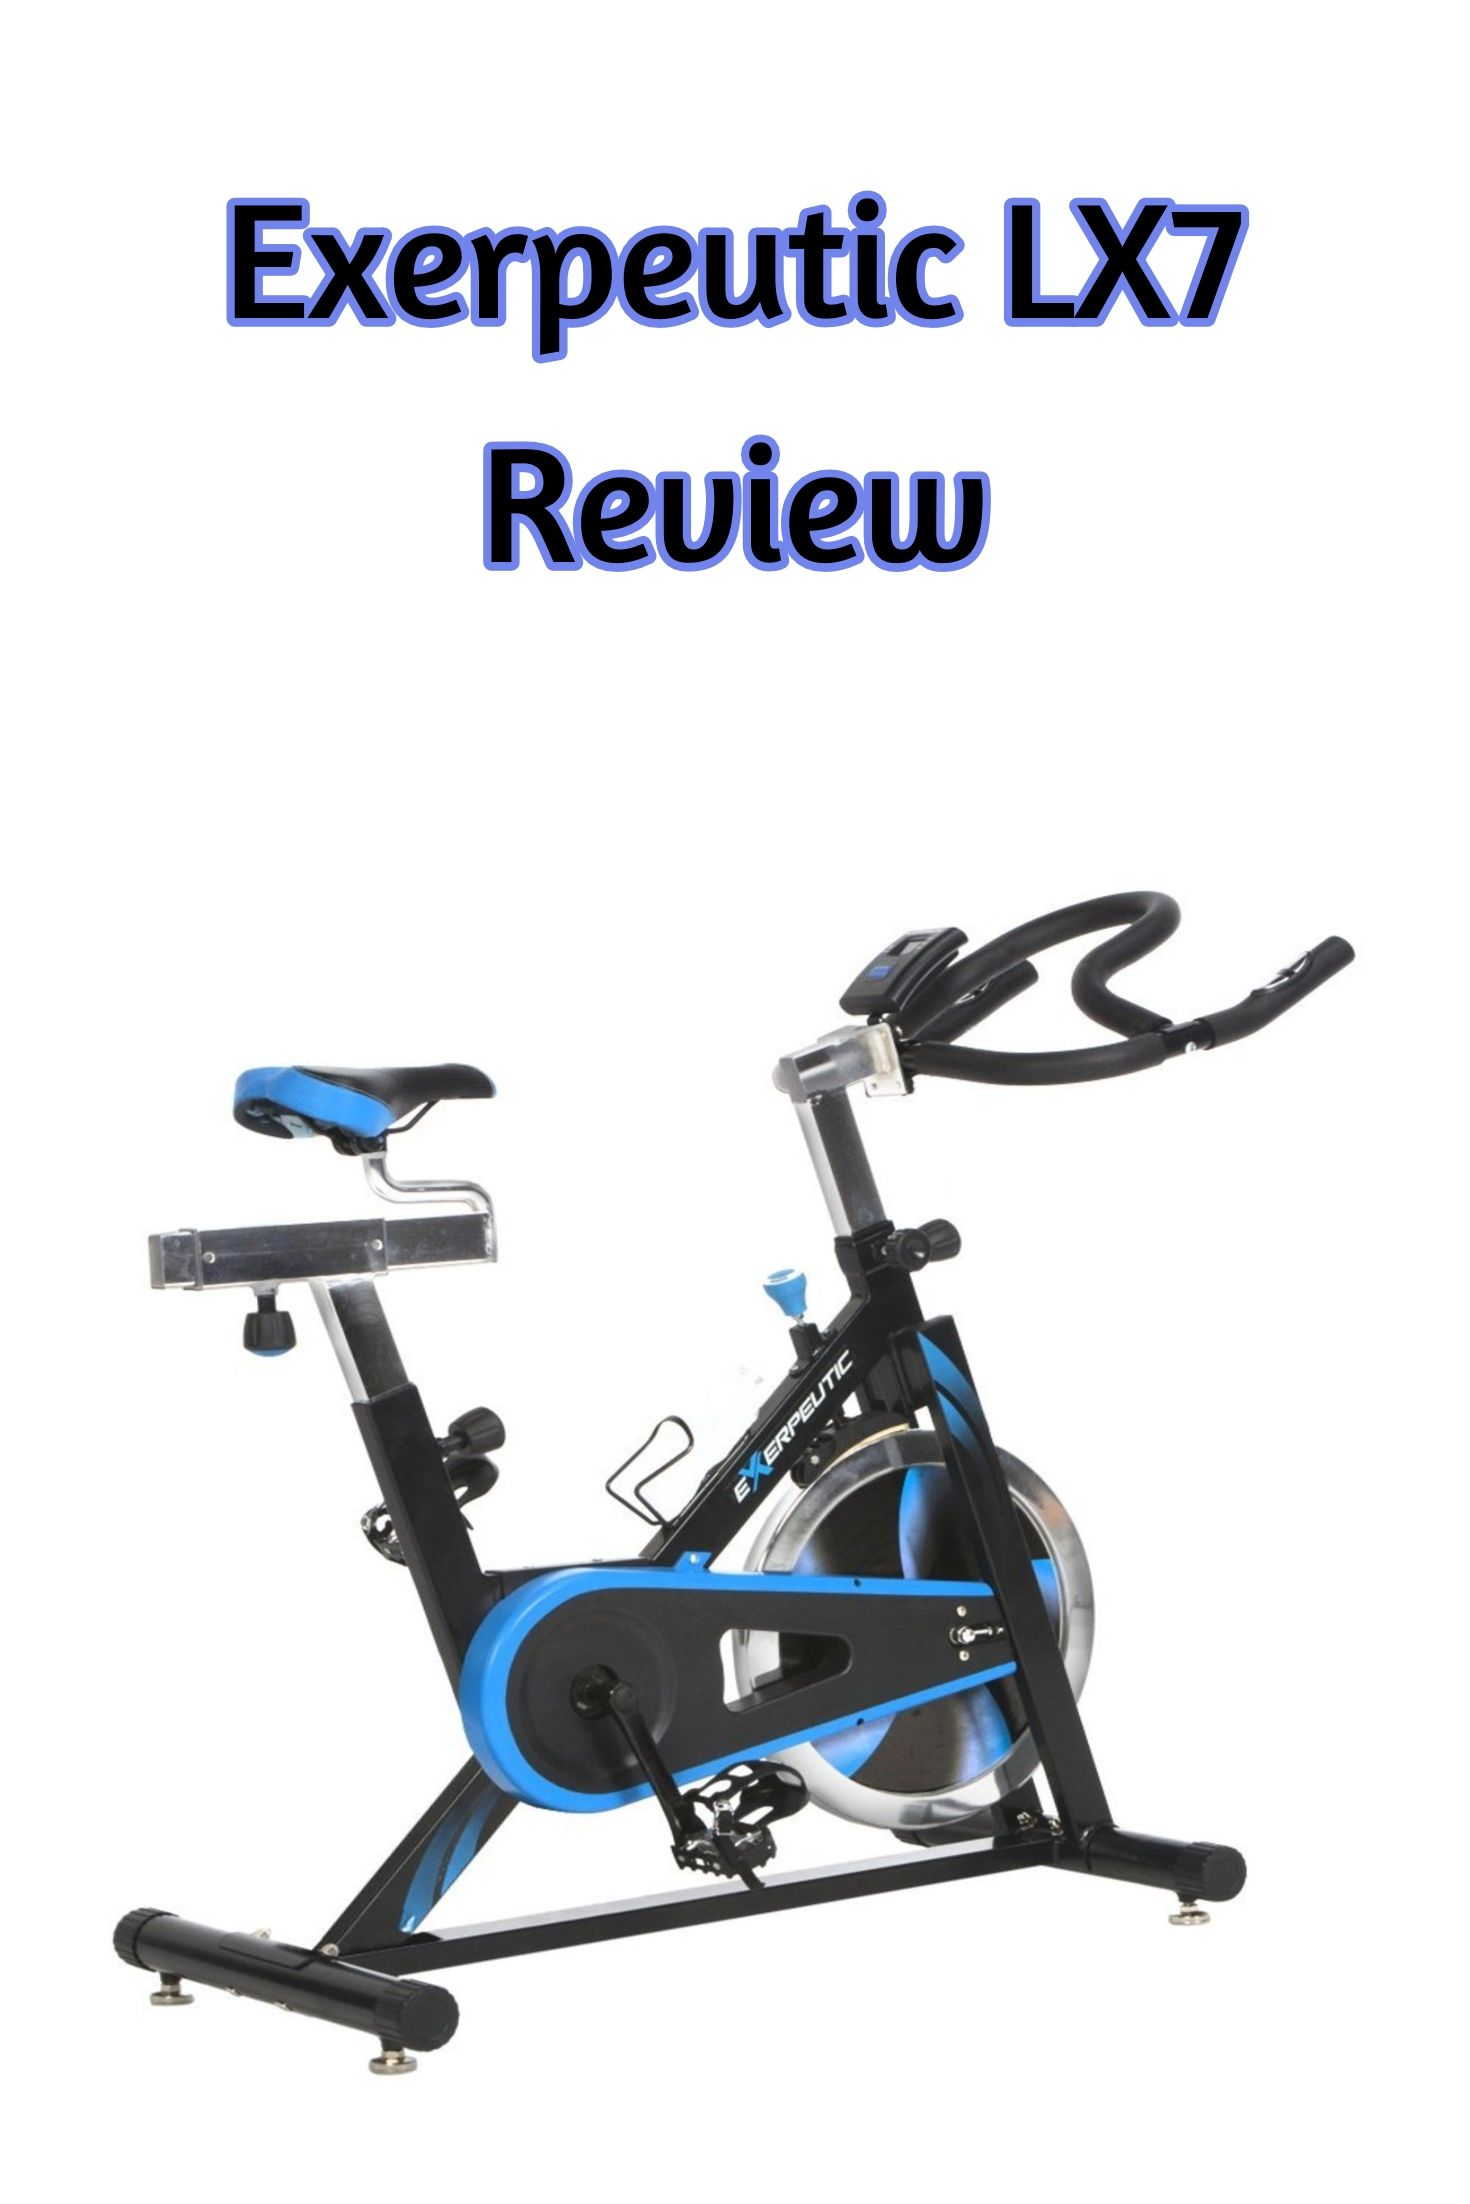 The Exerpeuticlx7 Is An Affordable Spin Bike That Has A Lot Of Excellent Buyer Feedback Biking Workout Workout Review Popular Workouts